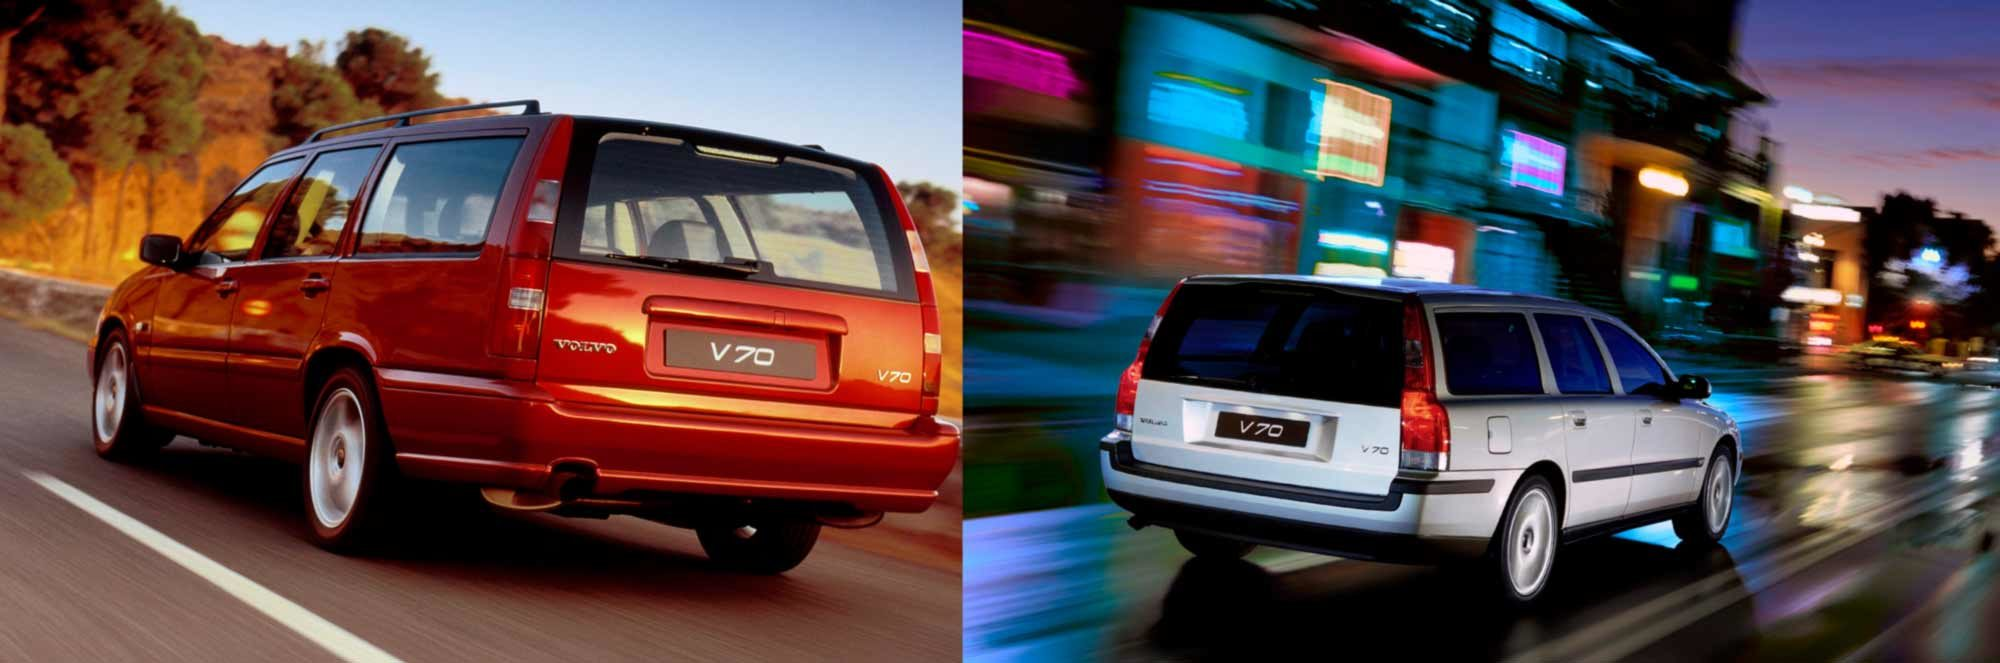 Volvo V70 P80 And P2